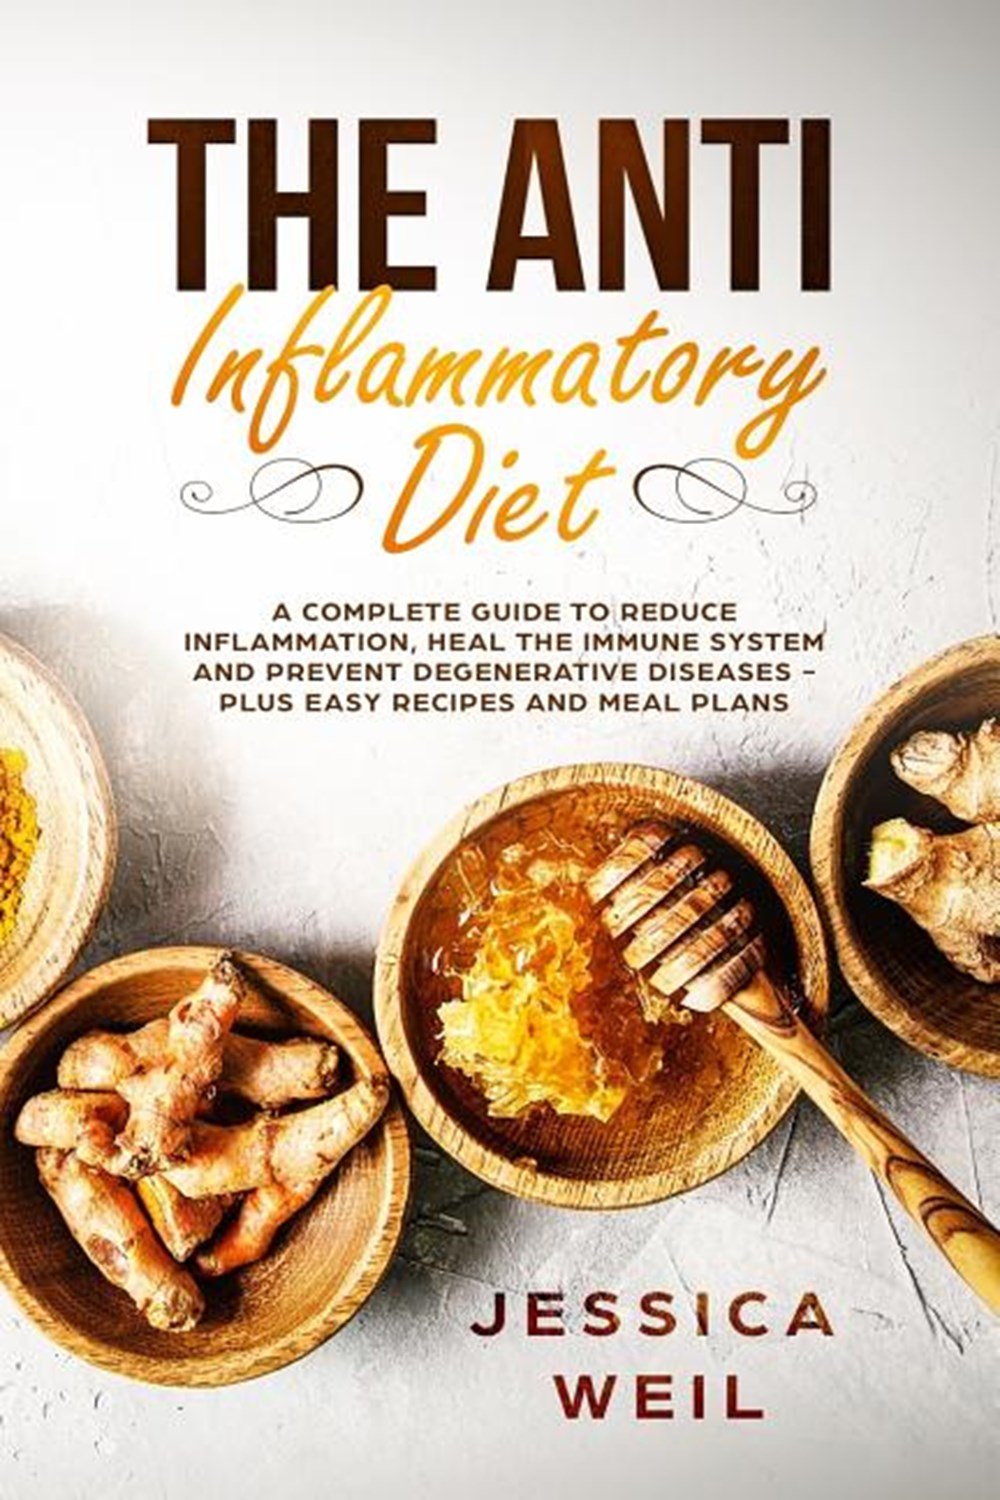 the anti inflammatory diet plan the book